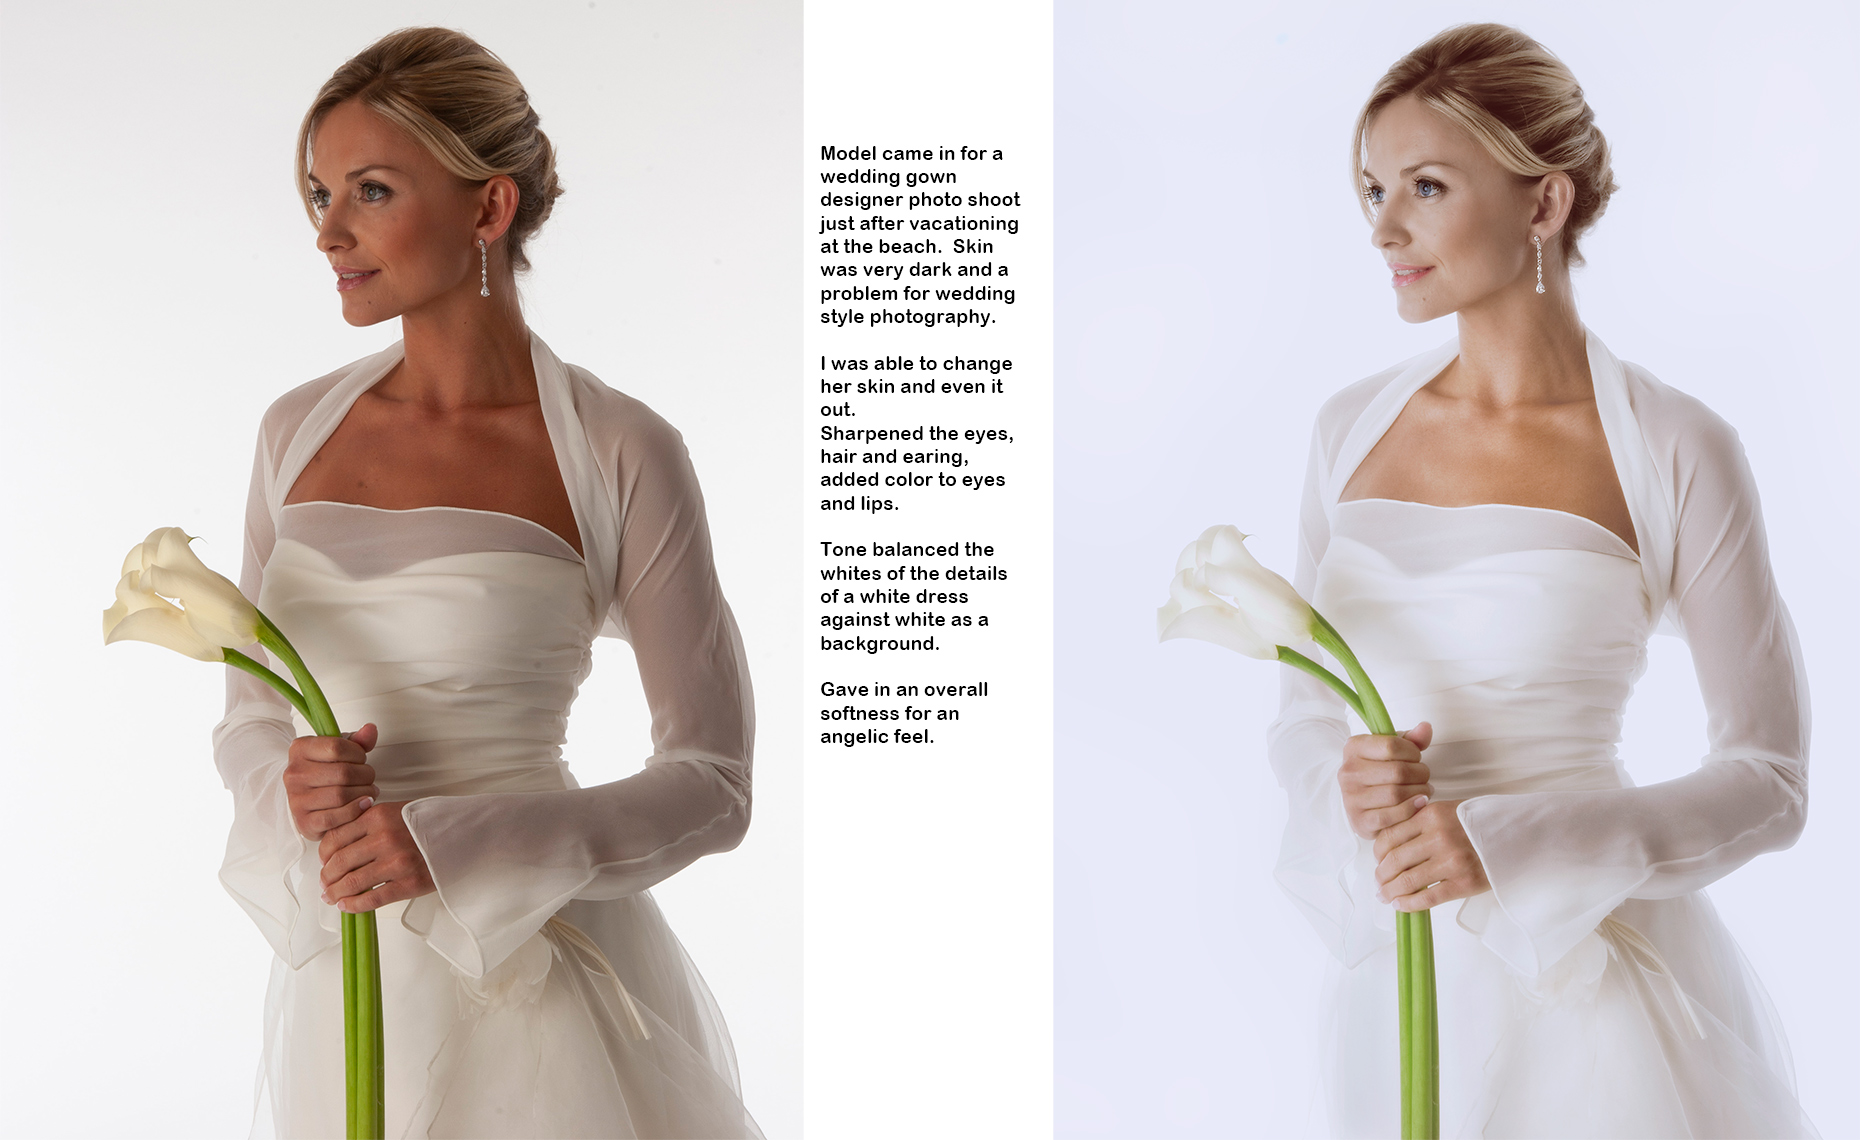 Bridal-before-and-after